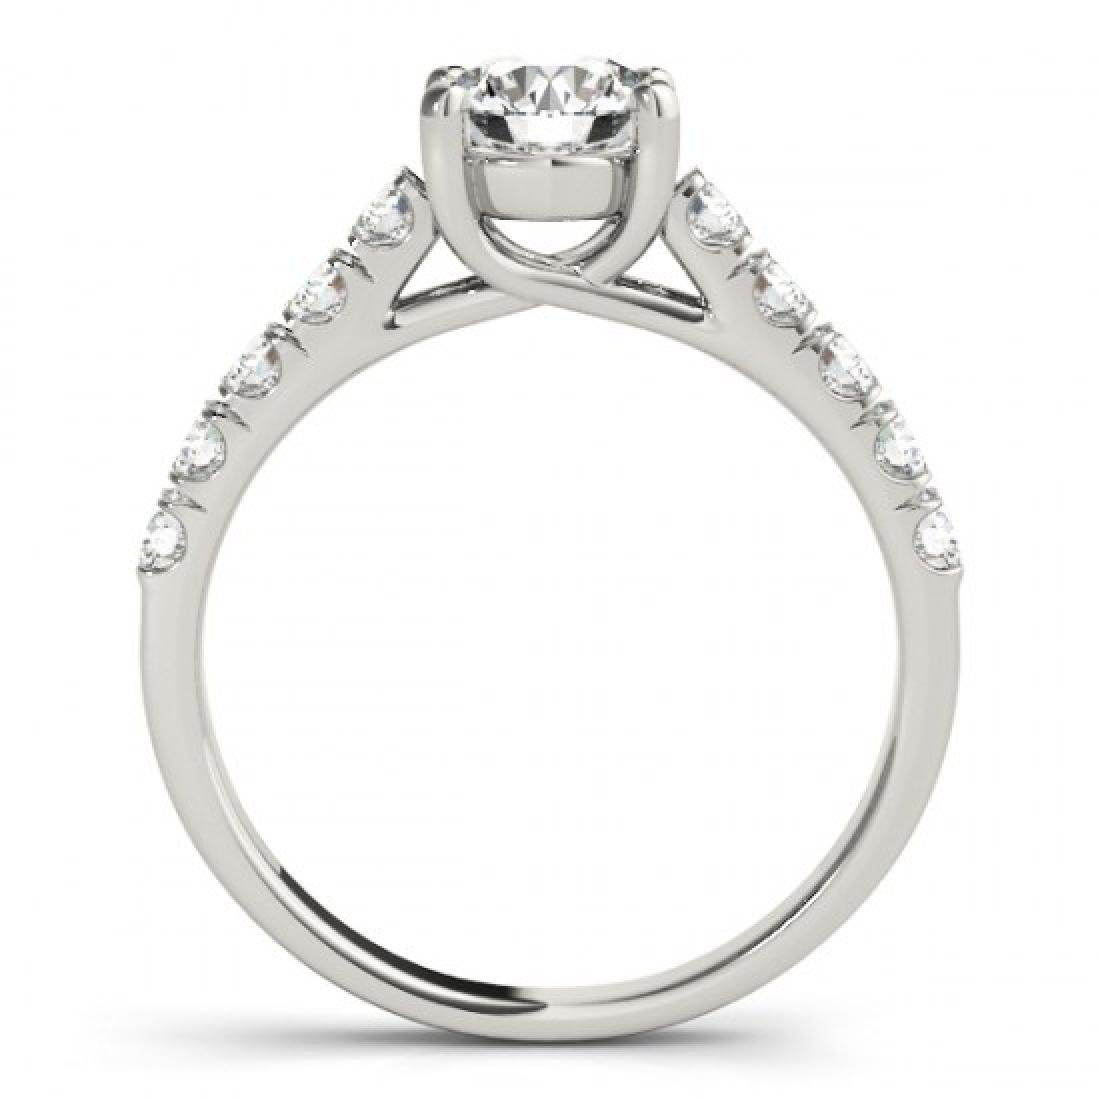 1.55 CTW Certified VS/SI Diamond Solitaire Ring 14K - 2